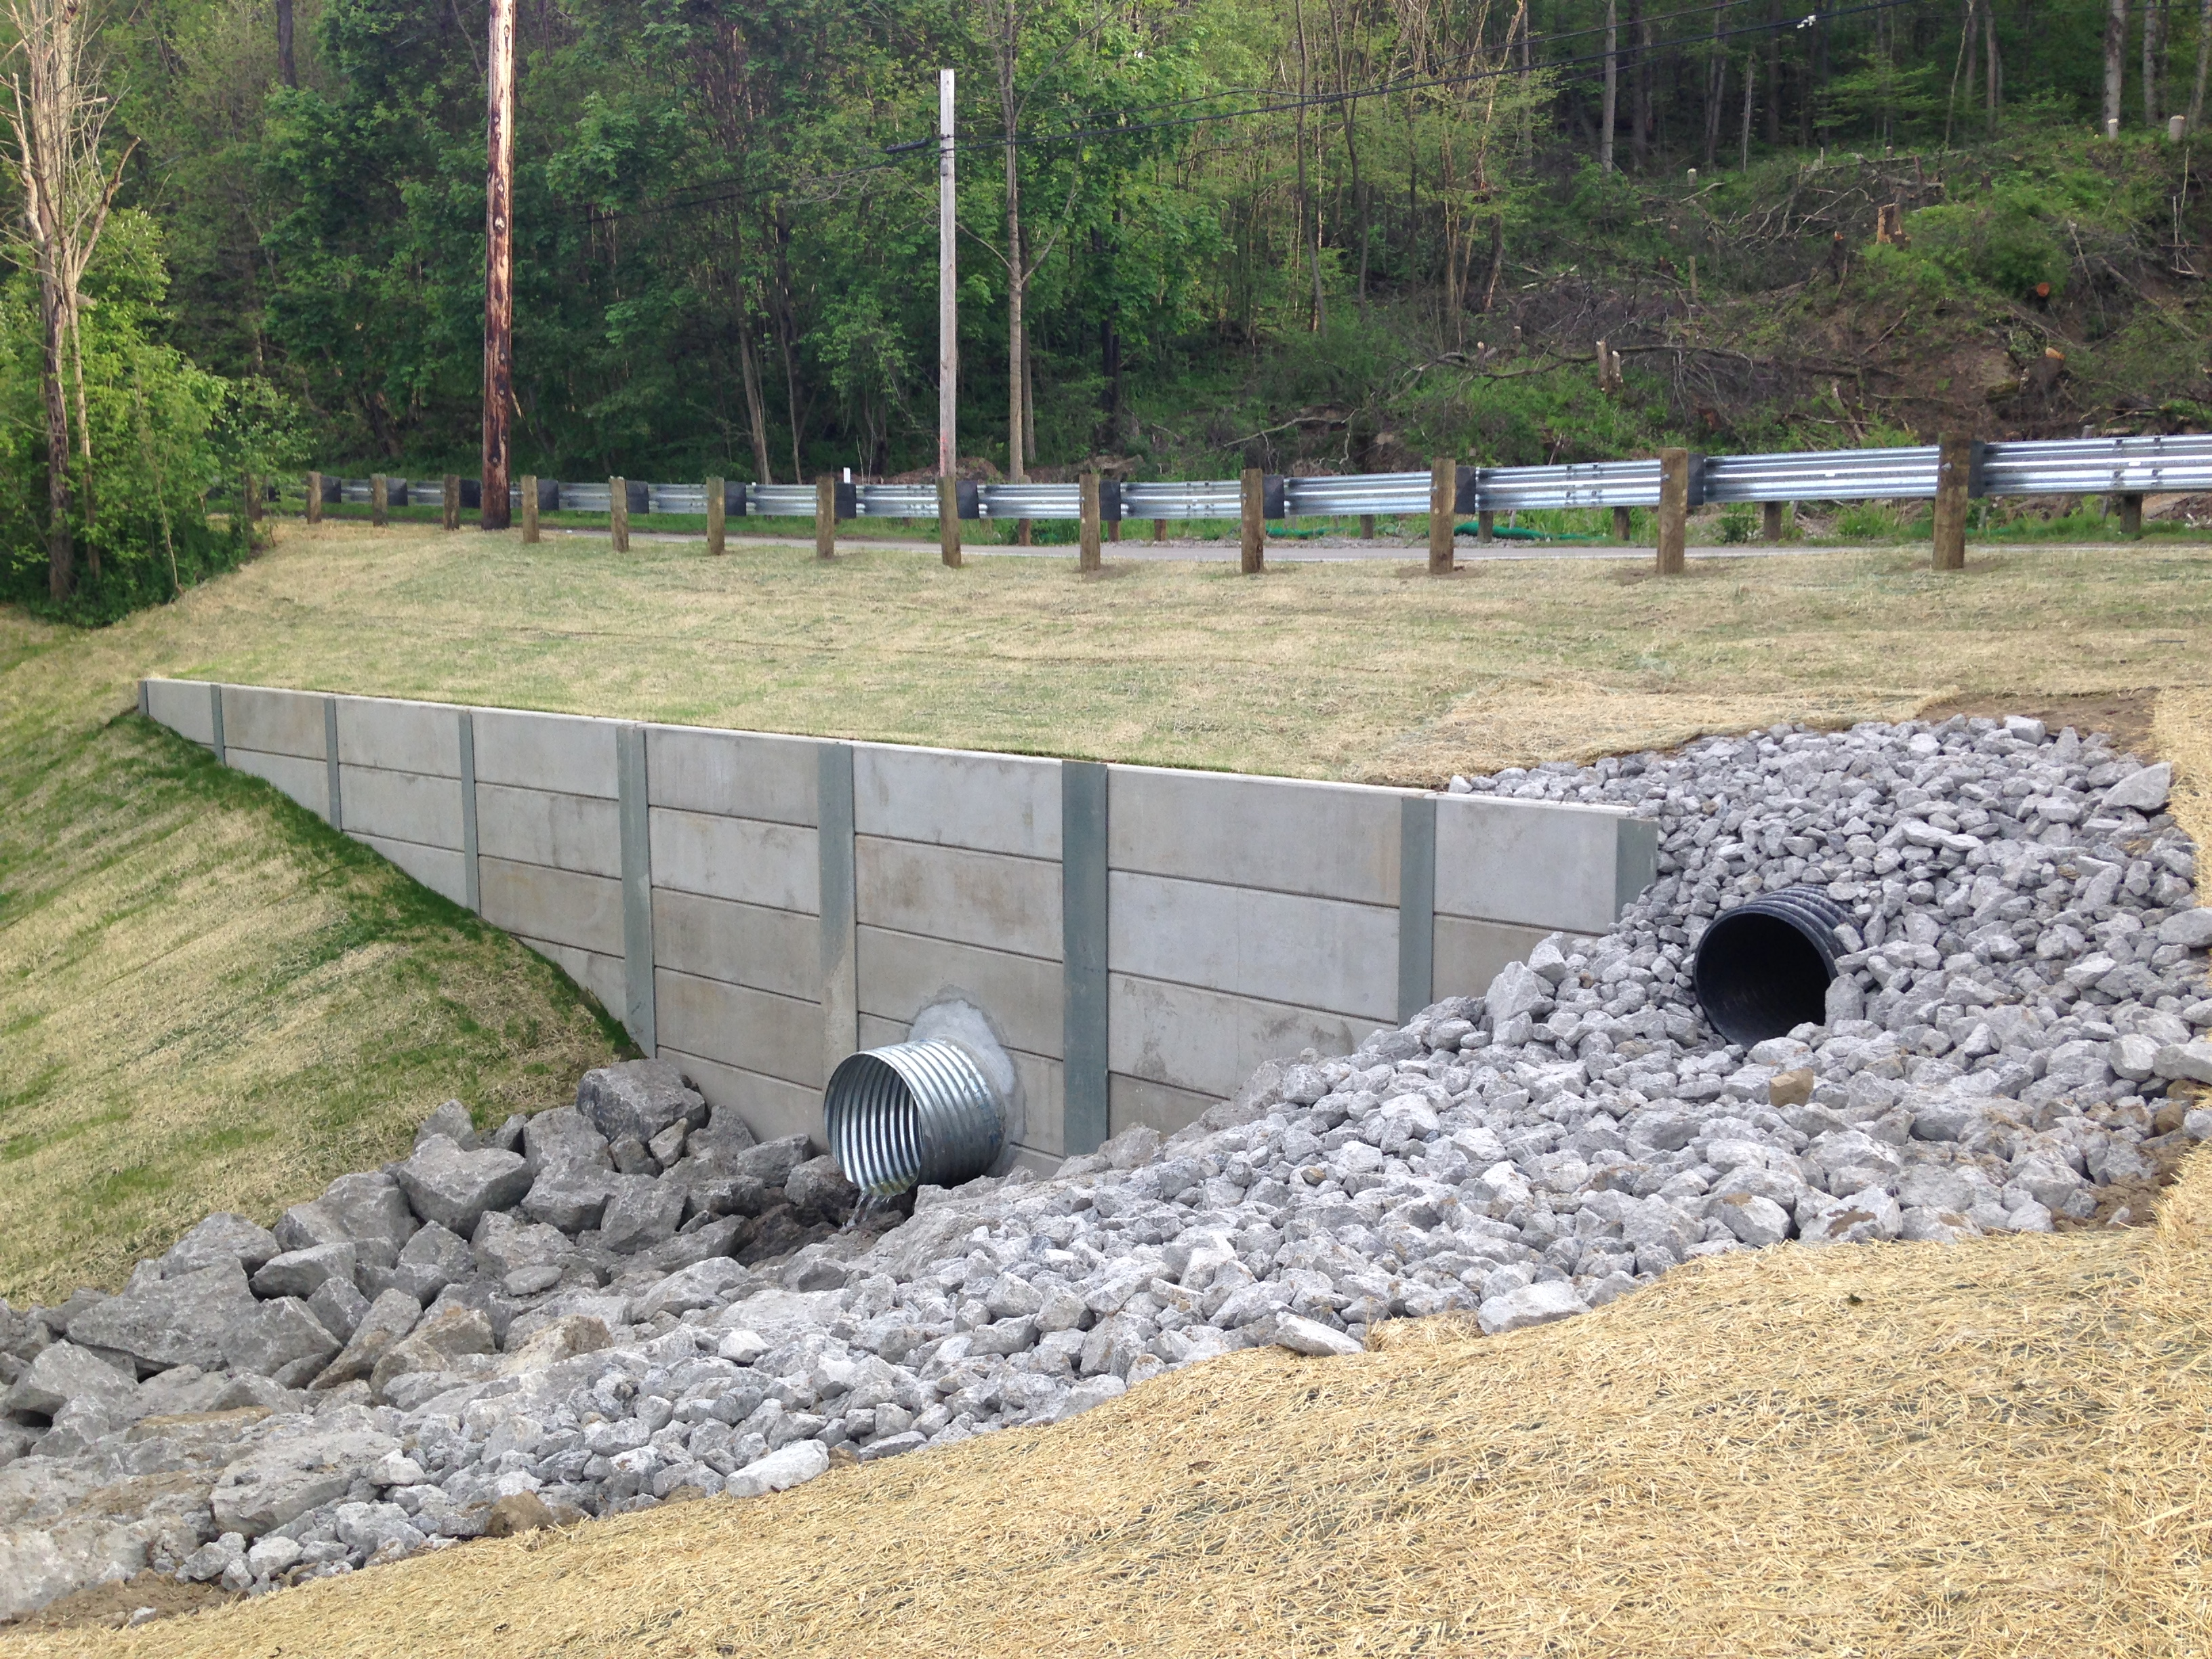 images/featured project images/CF17O - Lowellville_Jackson St Culvert 1.JPG